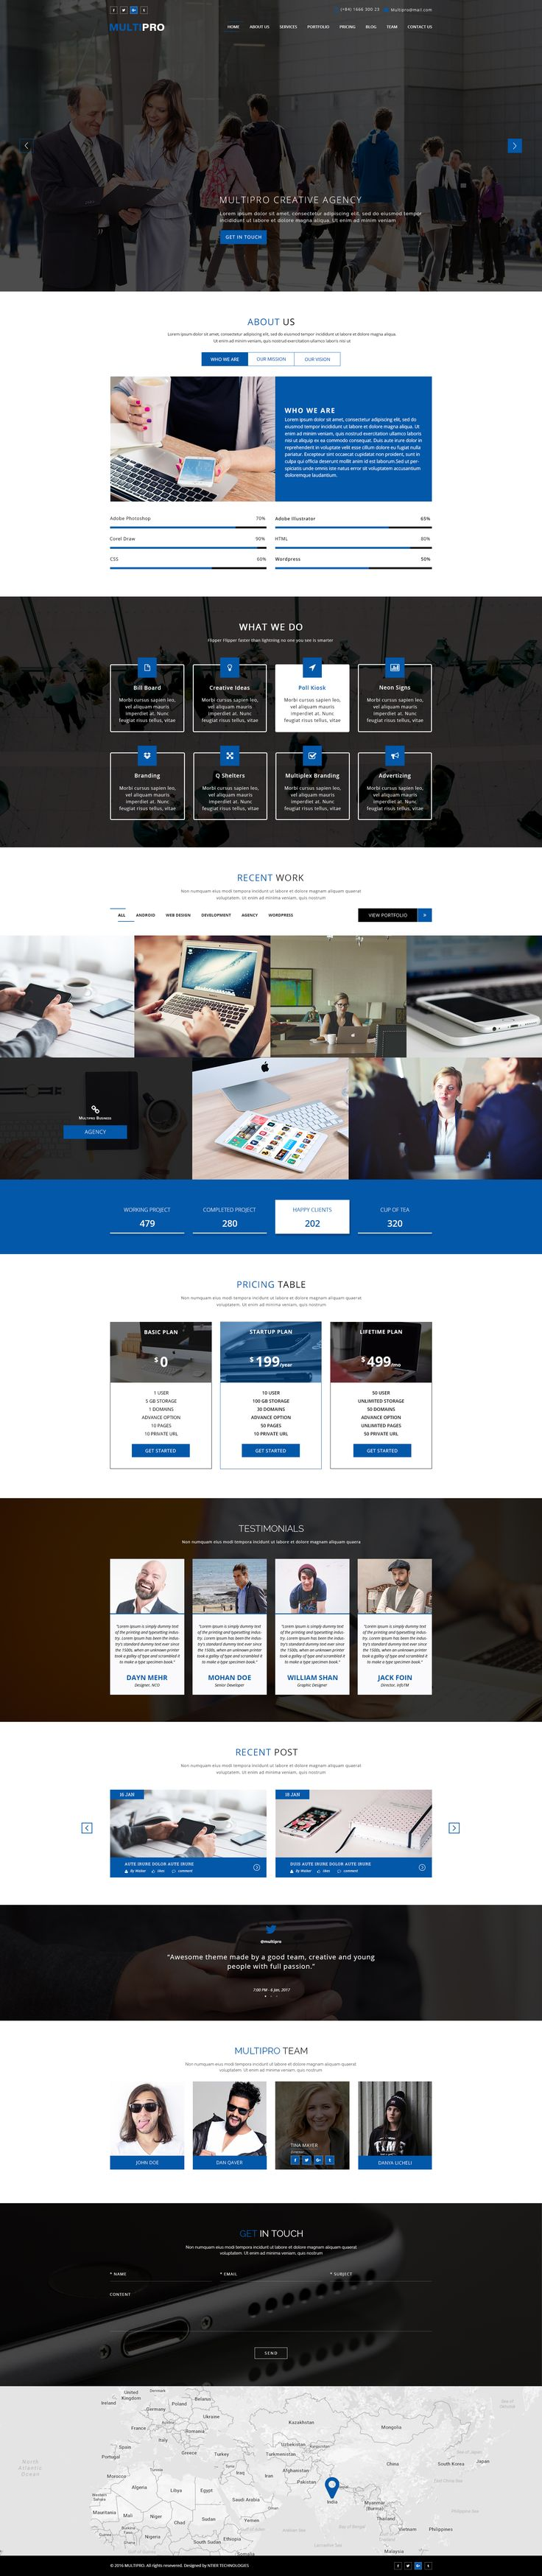 MULTIPRO - Creative Onepage PSD Template by n-tier | ThemeForest